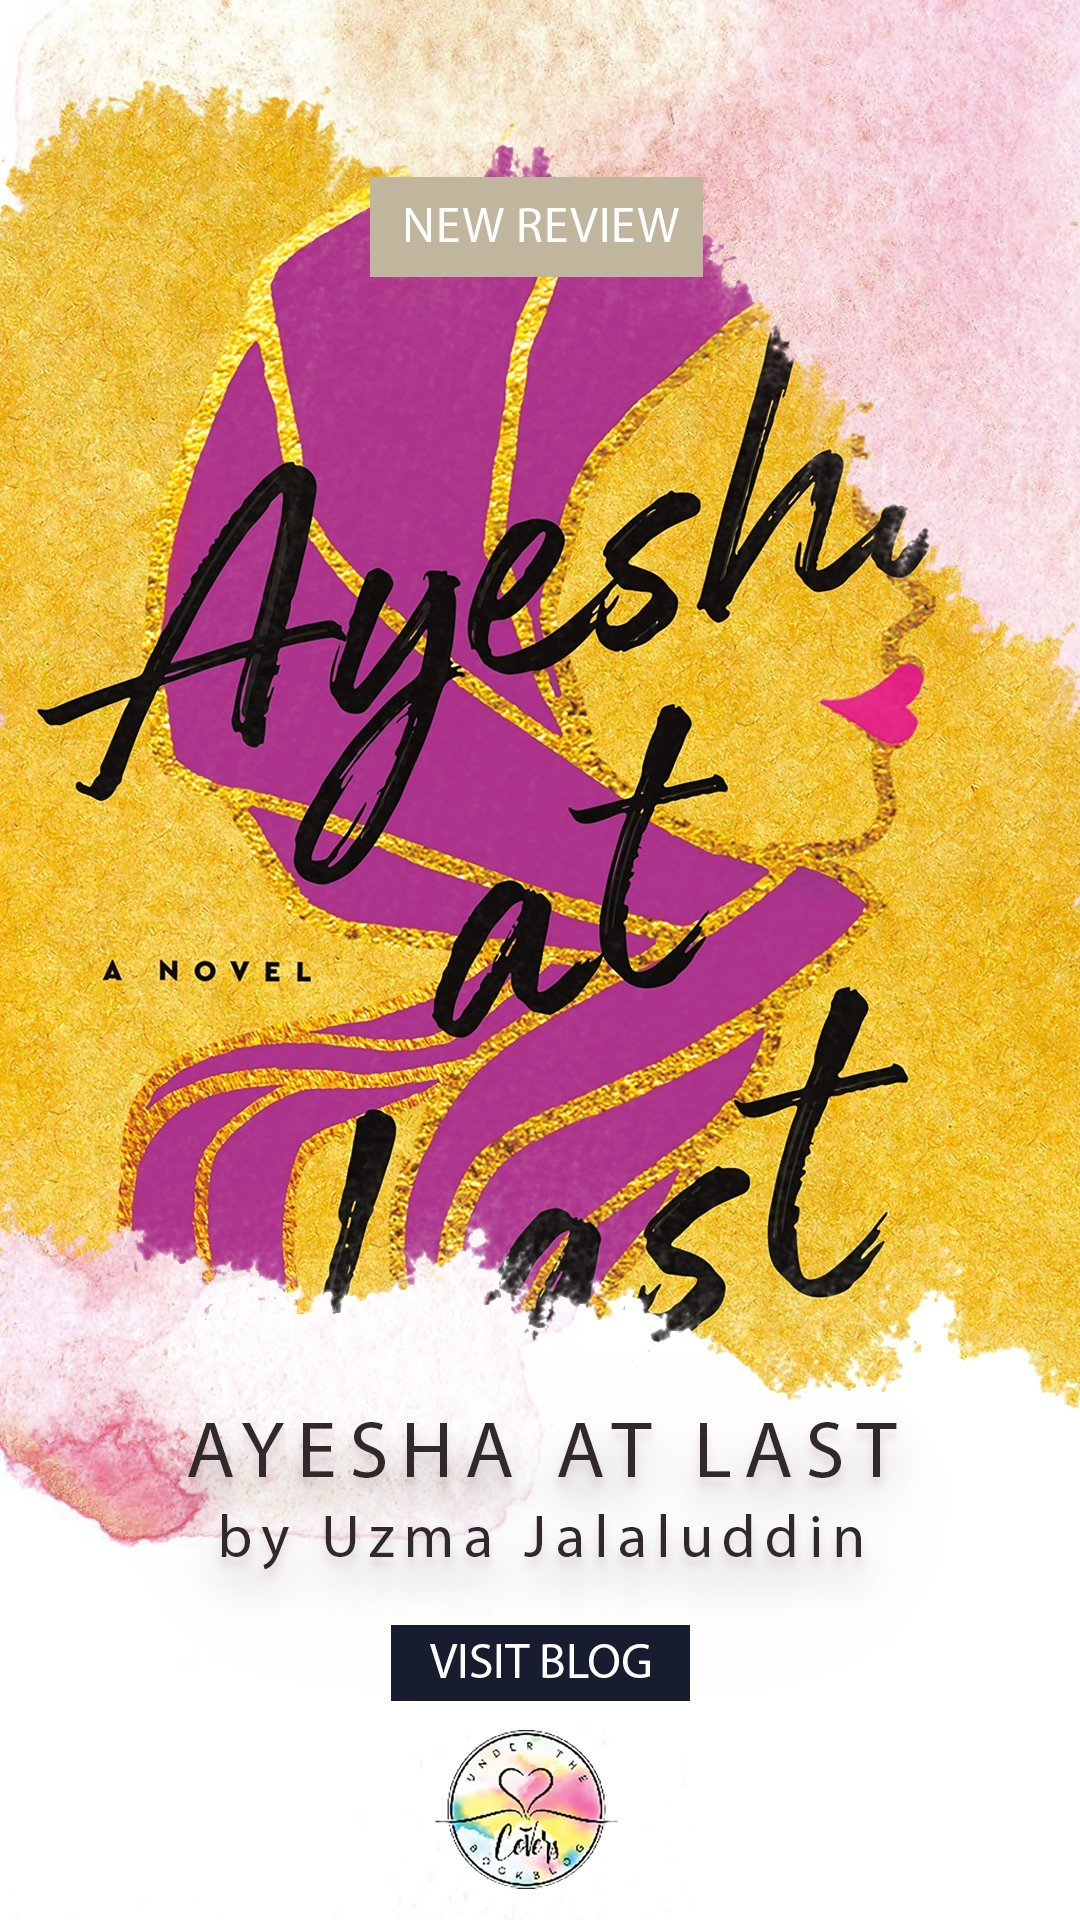 ARC Review: Ayesha At Last by Uzma Jalaluddin